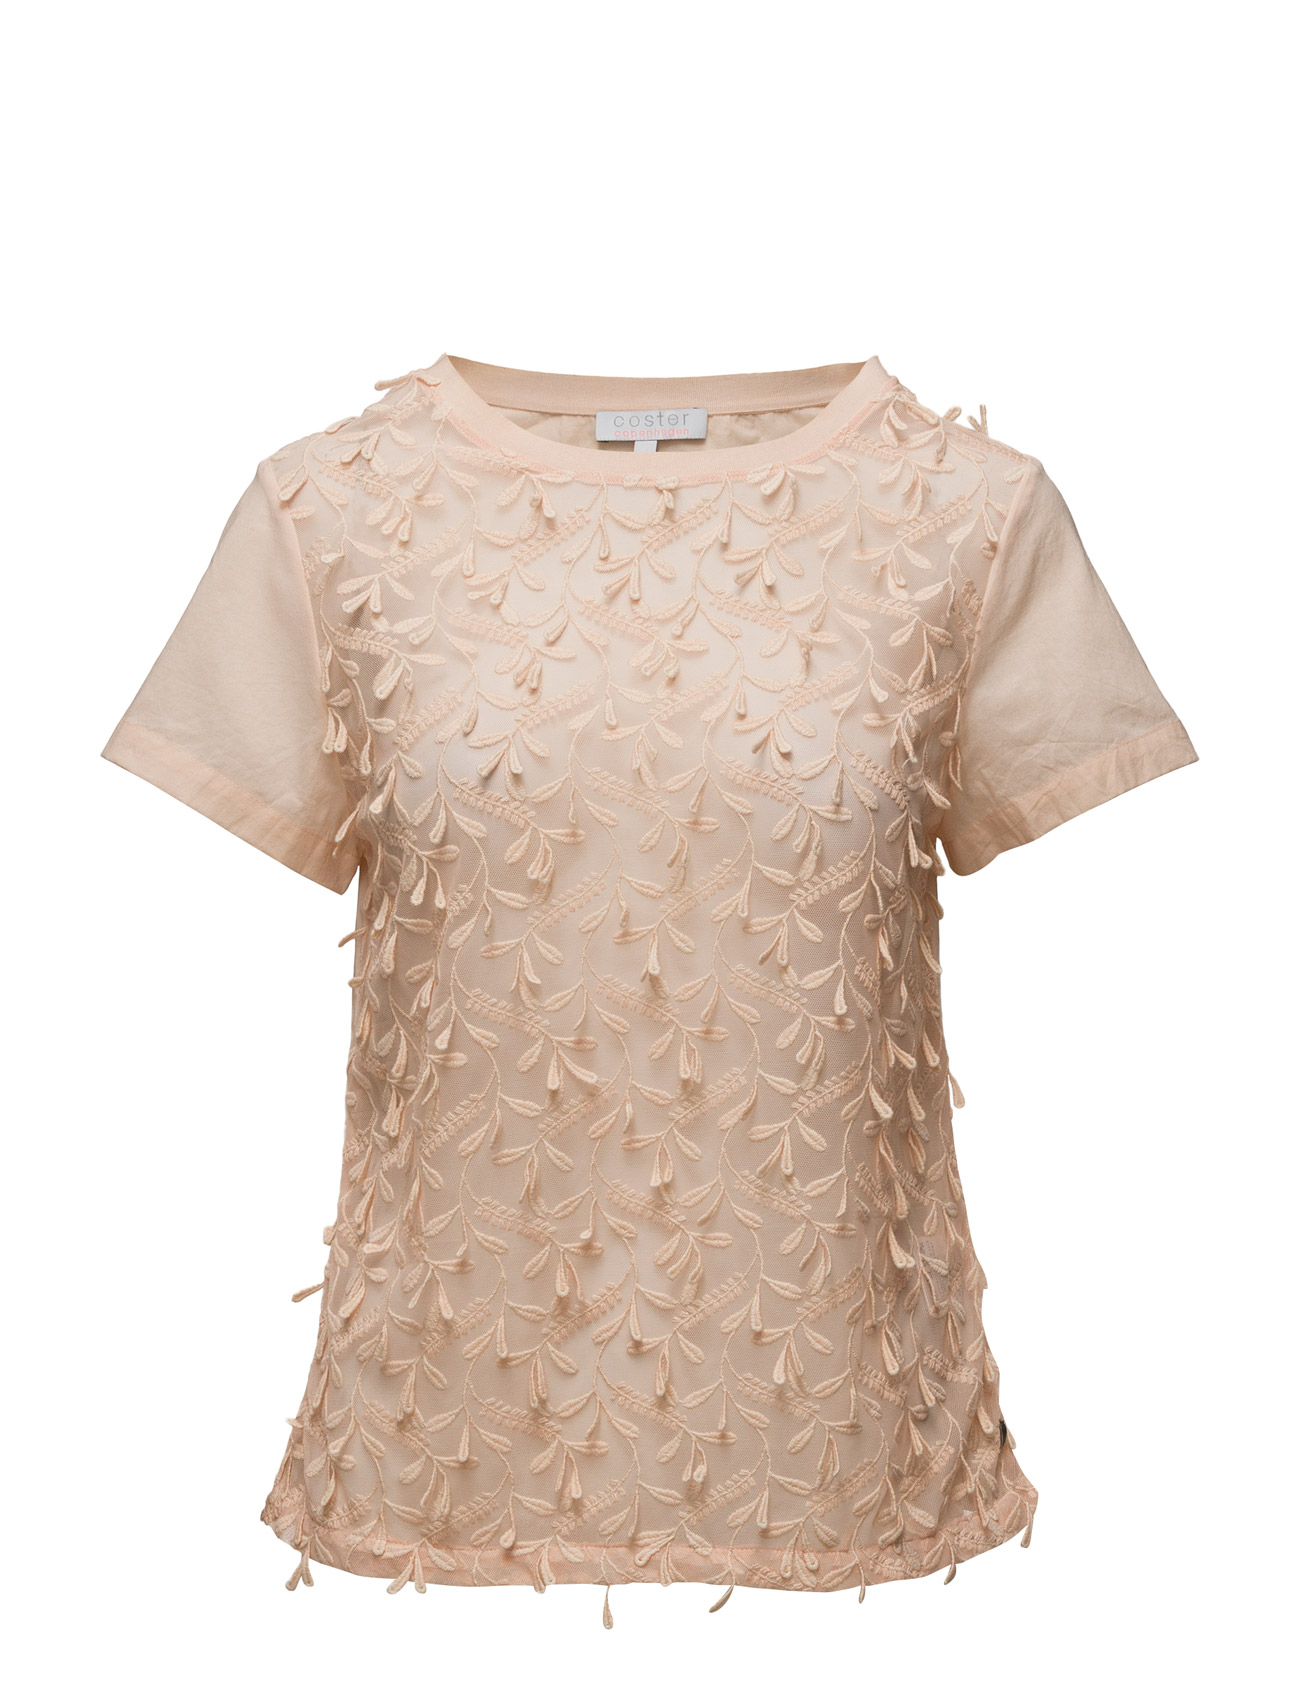 3d Lace Top Short Sleeve thumbnail